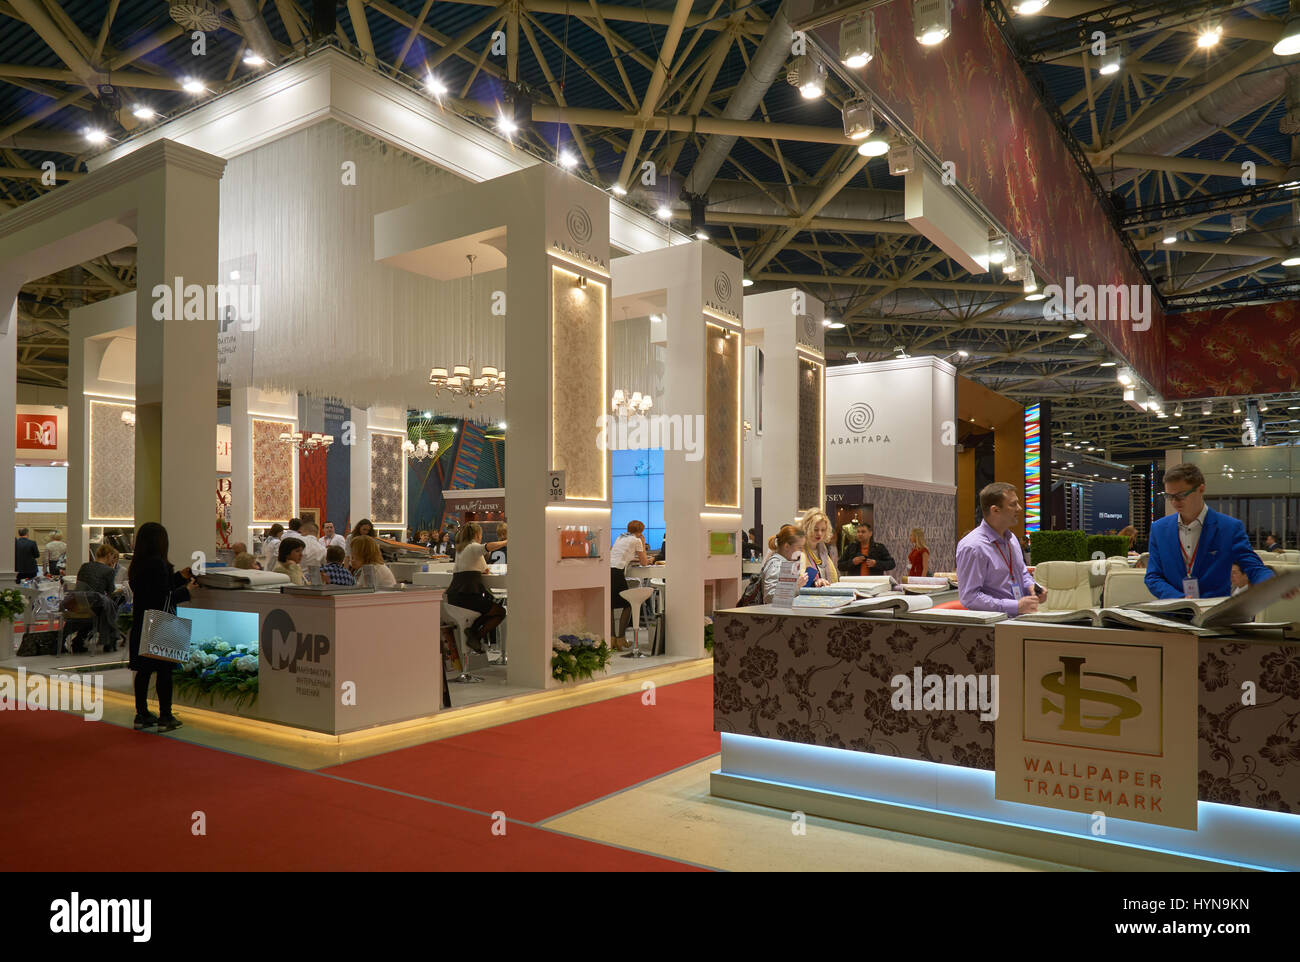 Exhibition Stand Wallpaper : Exhibition stand building stock photos & exhibition stand building